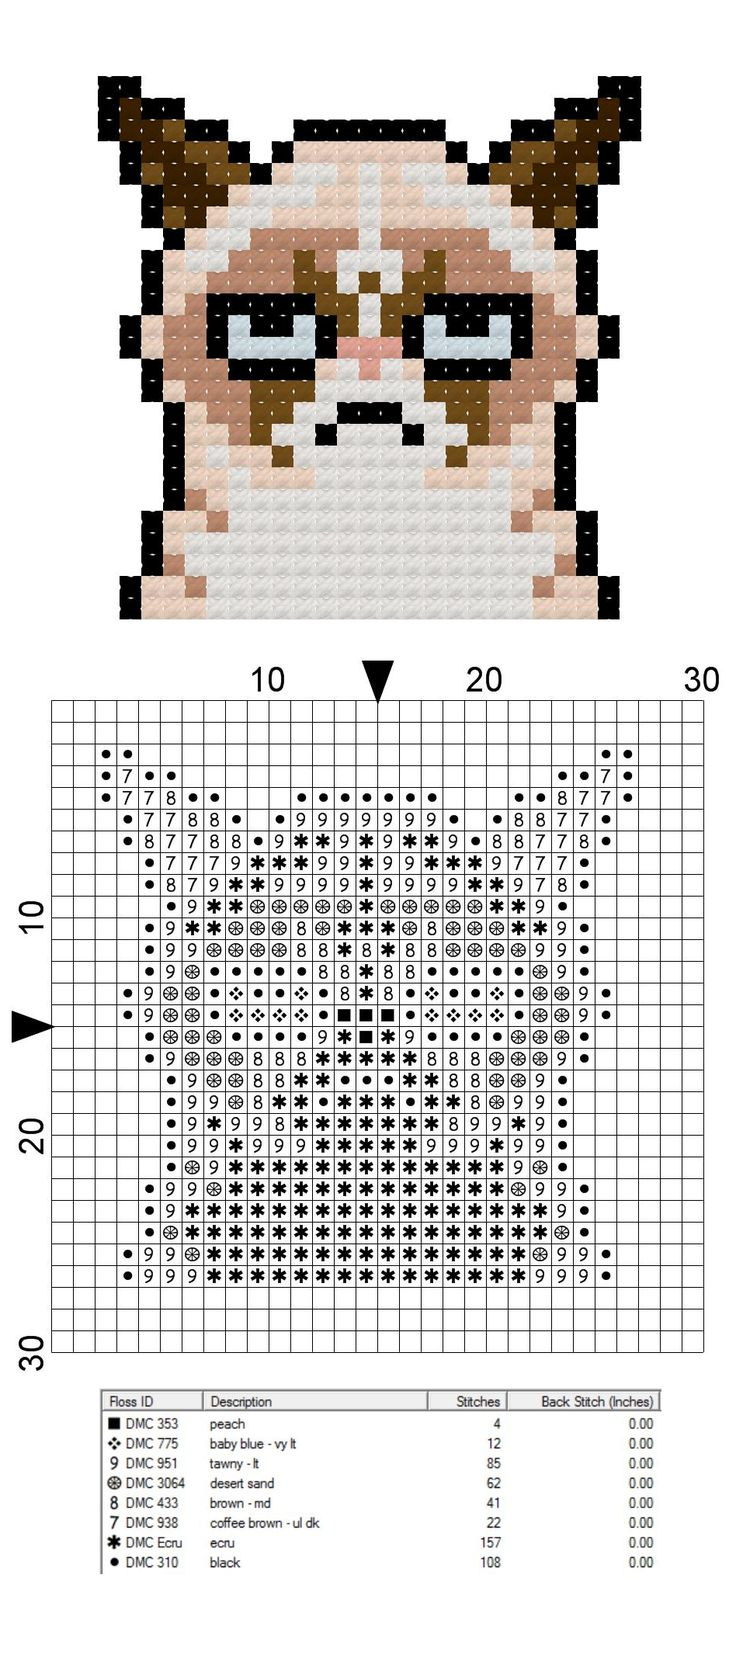 Free Grumpy Cat mini cross stitch pattern from CraftTimeinArkham on Etsy.